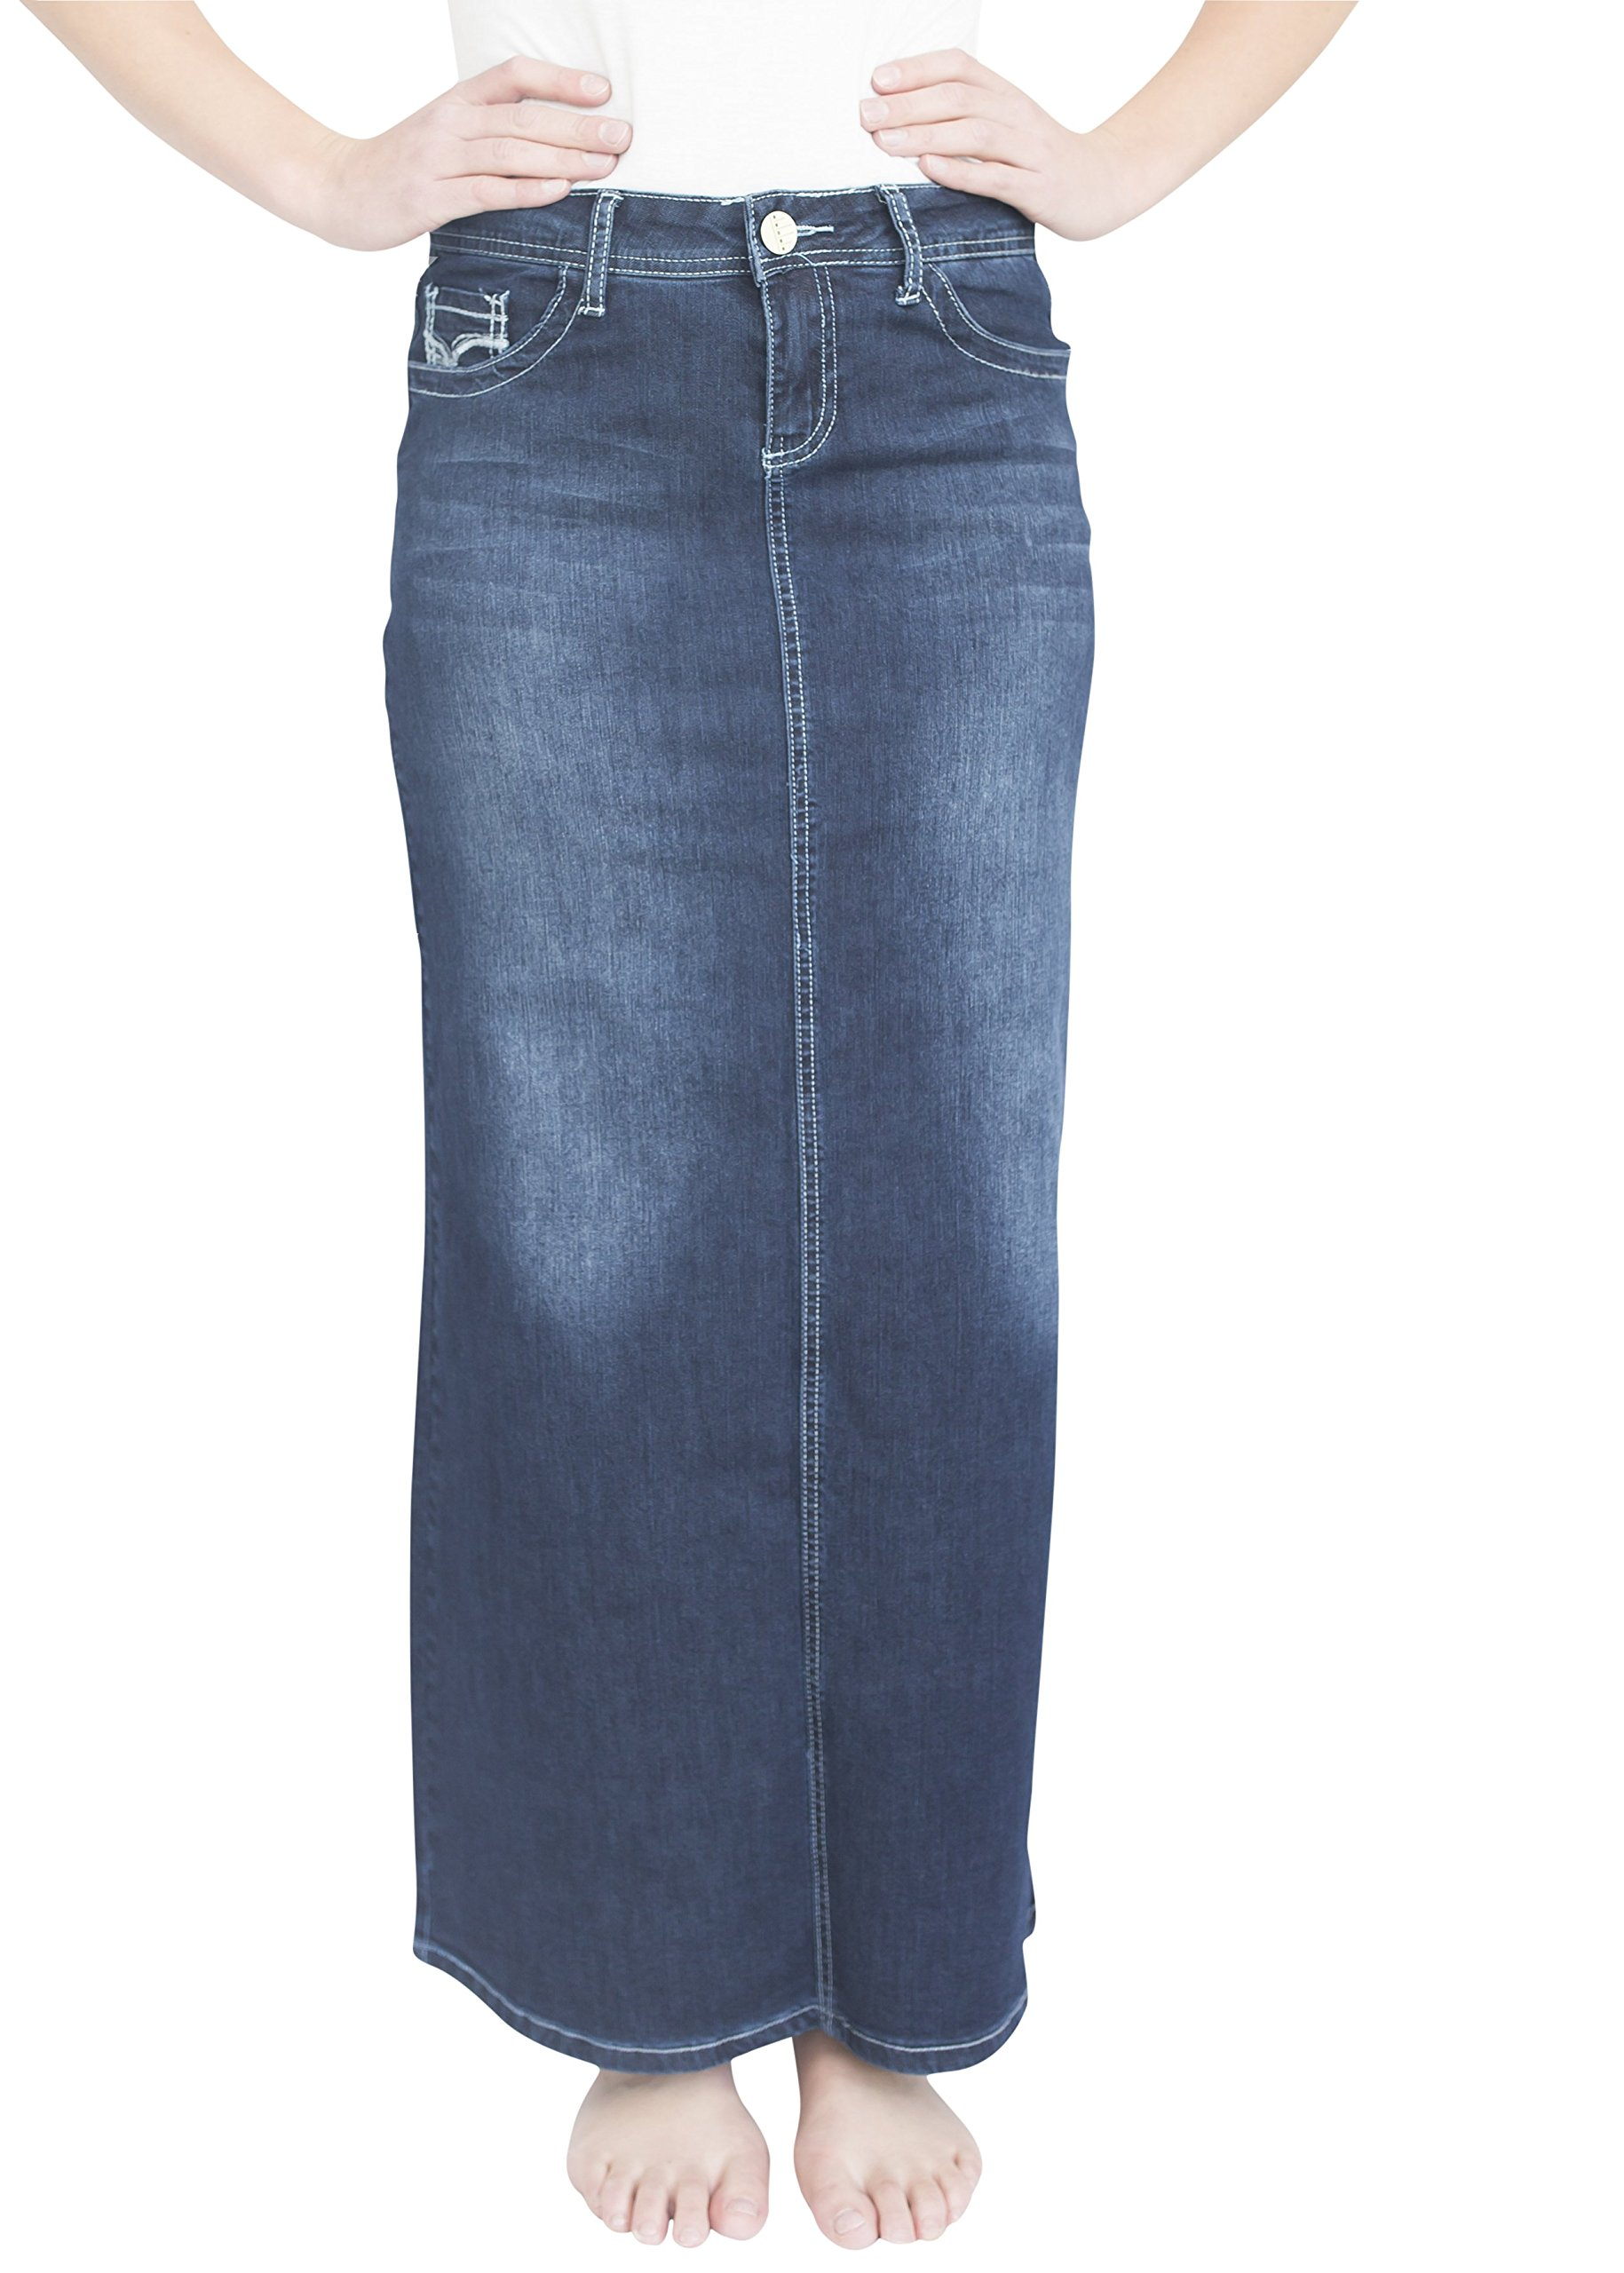 Stella Dark Wash Long Jean Skirt 41 inch Length